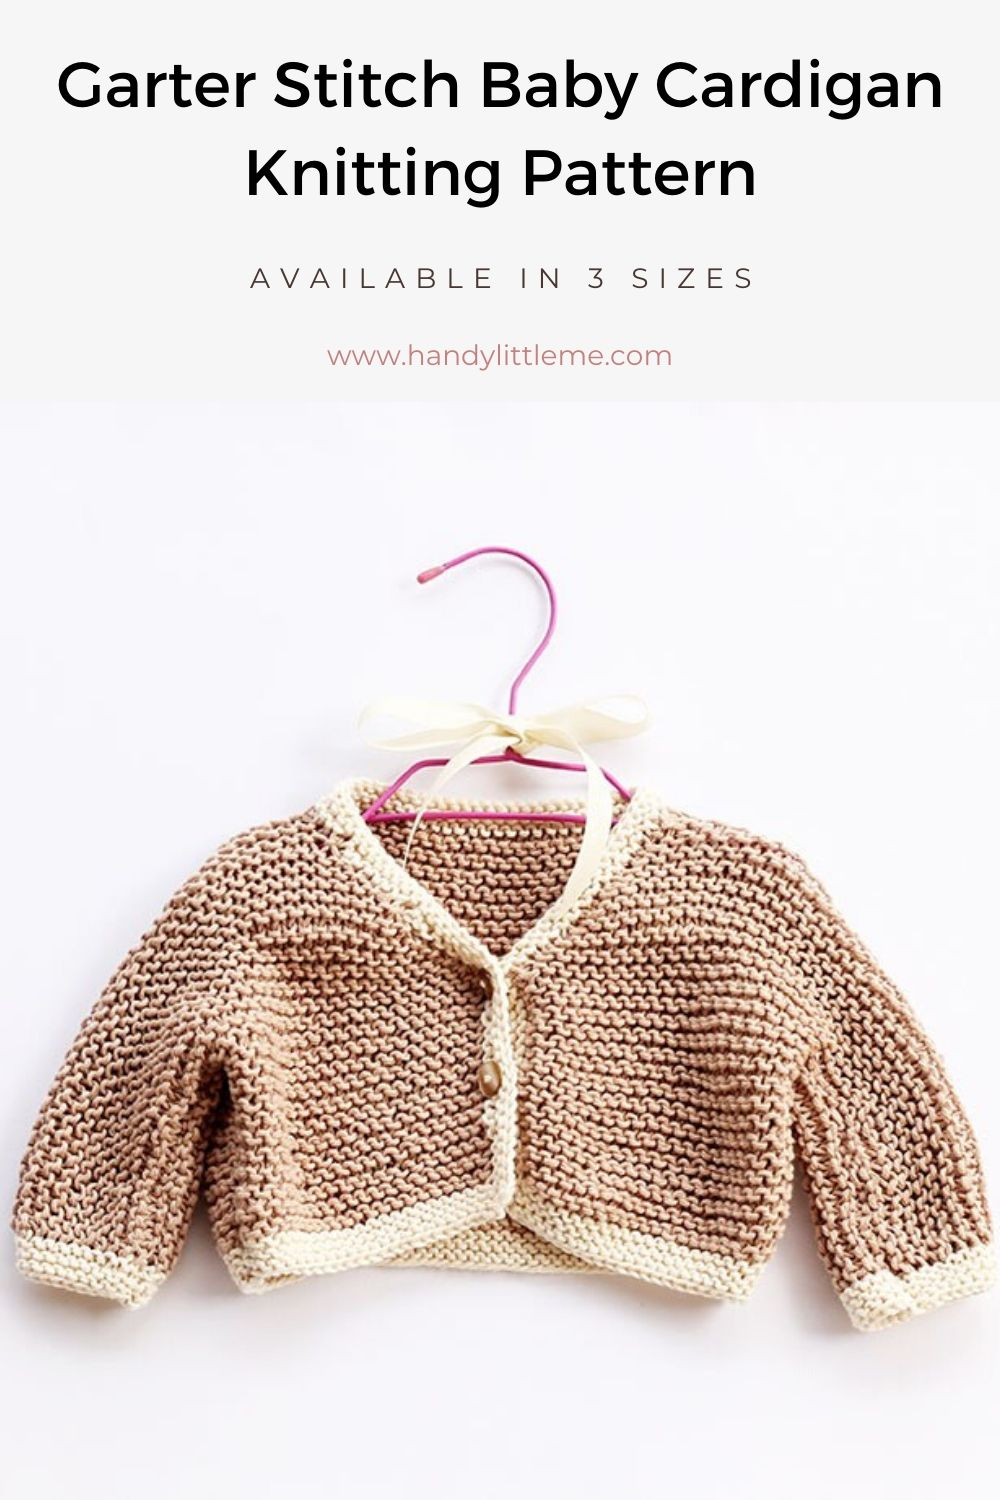 Garter stitch baby cardigan knitting pattern